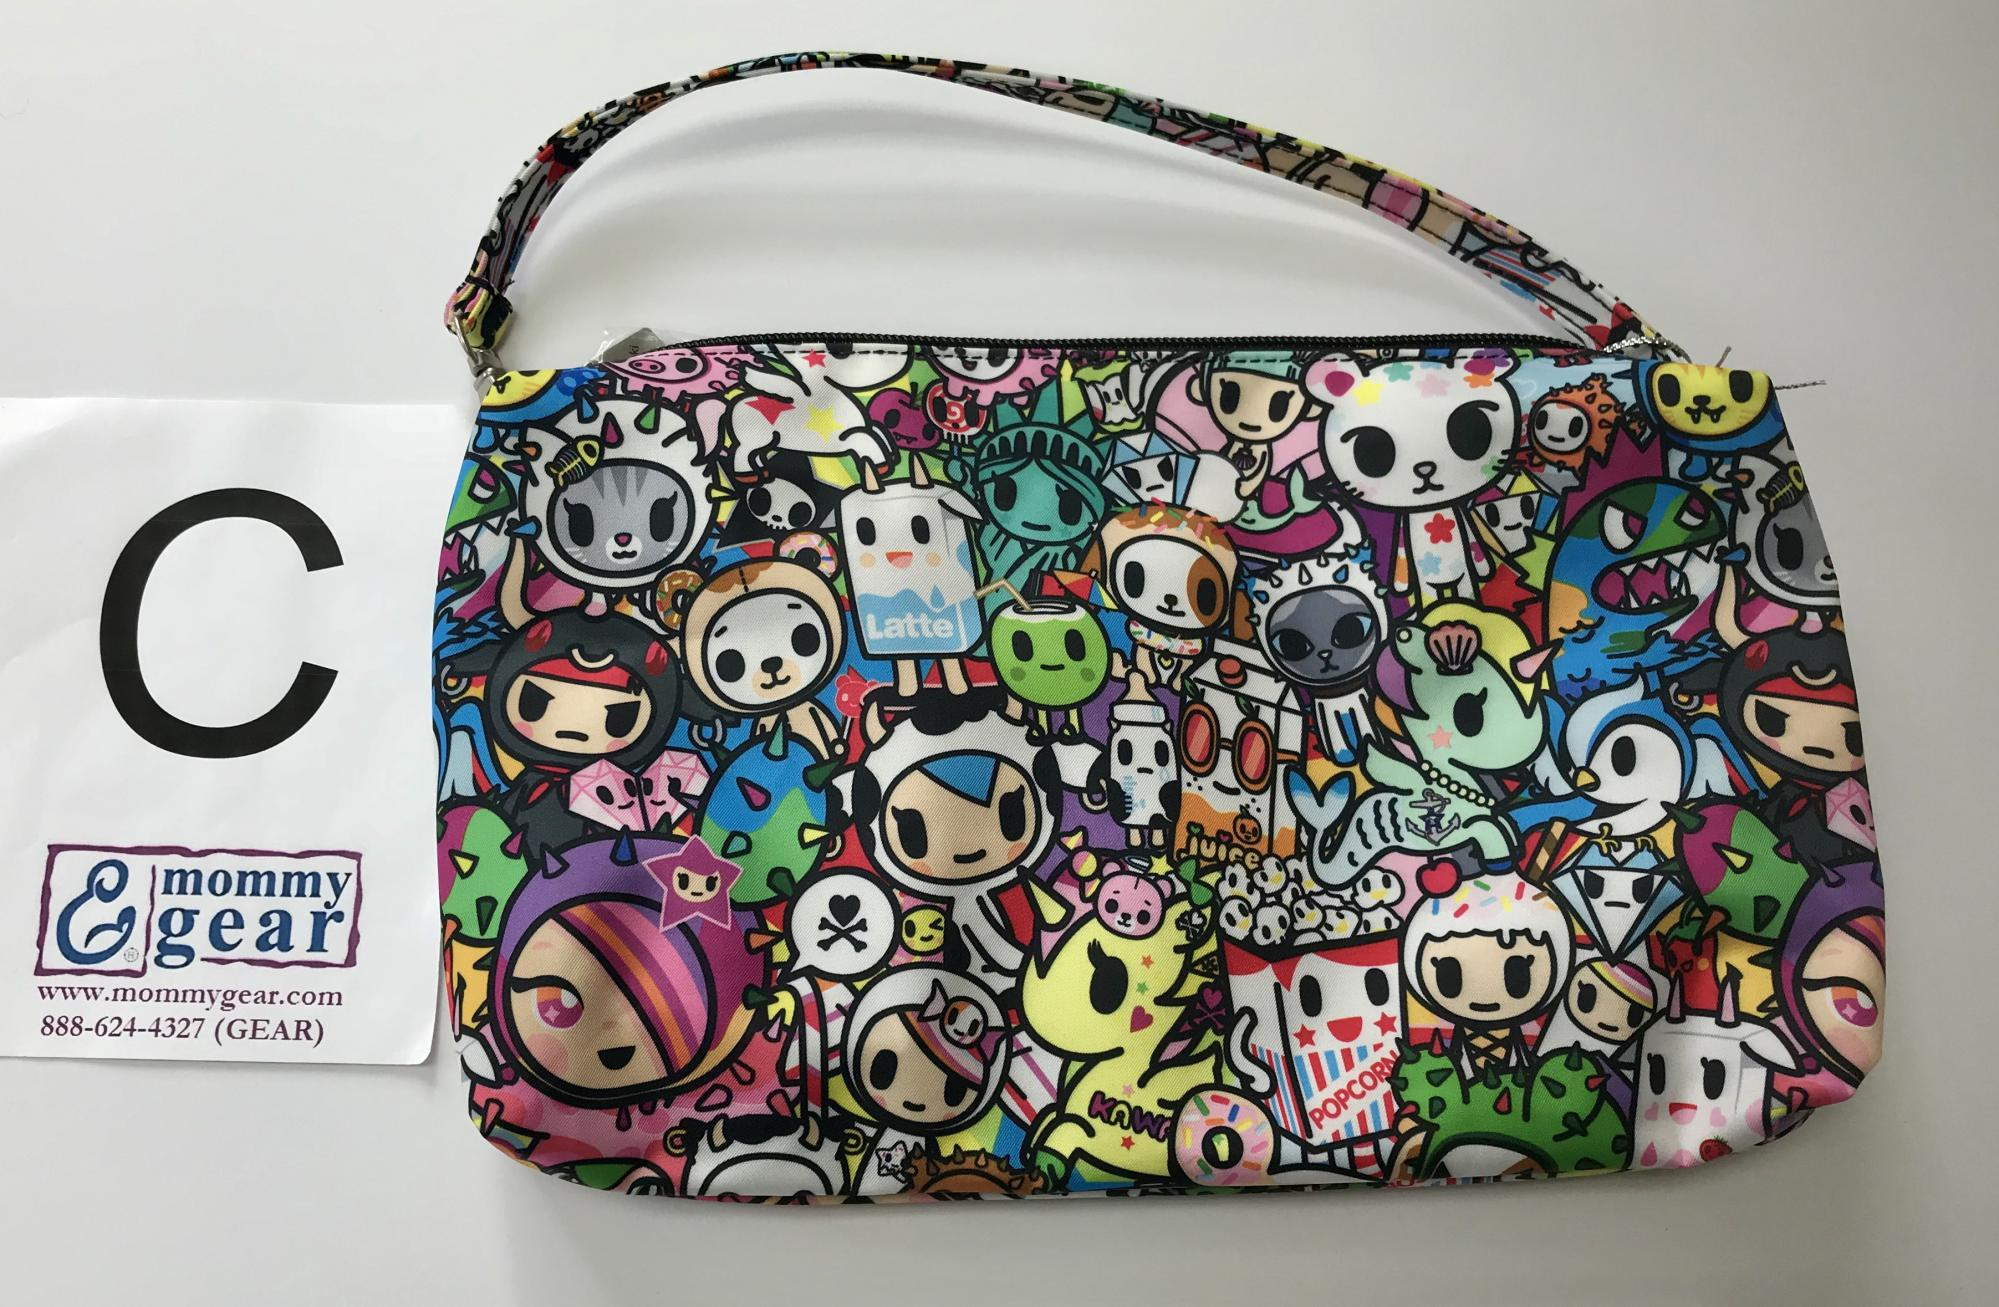 ju-ju-be-tokidoki-iconic-2.0-be-quick-pp-c-2.jpg